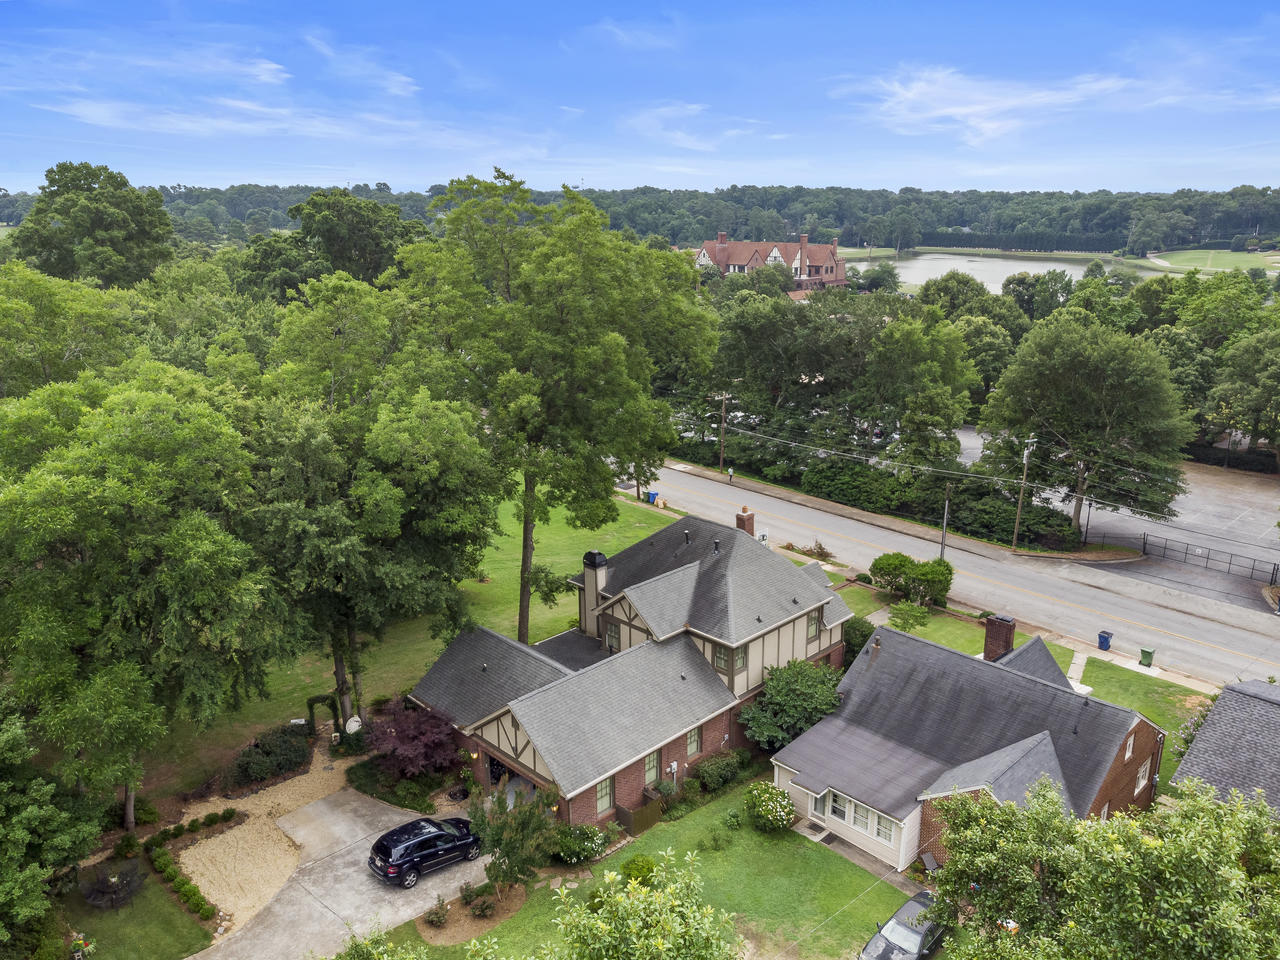 2516 Alston Dr SE Atlanta GA-023-024-GLM00010042-MLS_Size.jpg